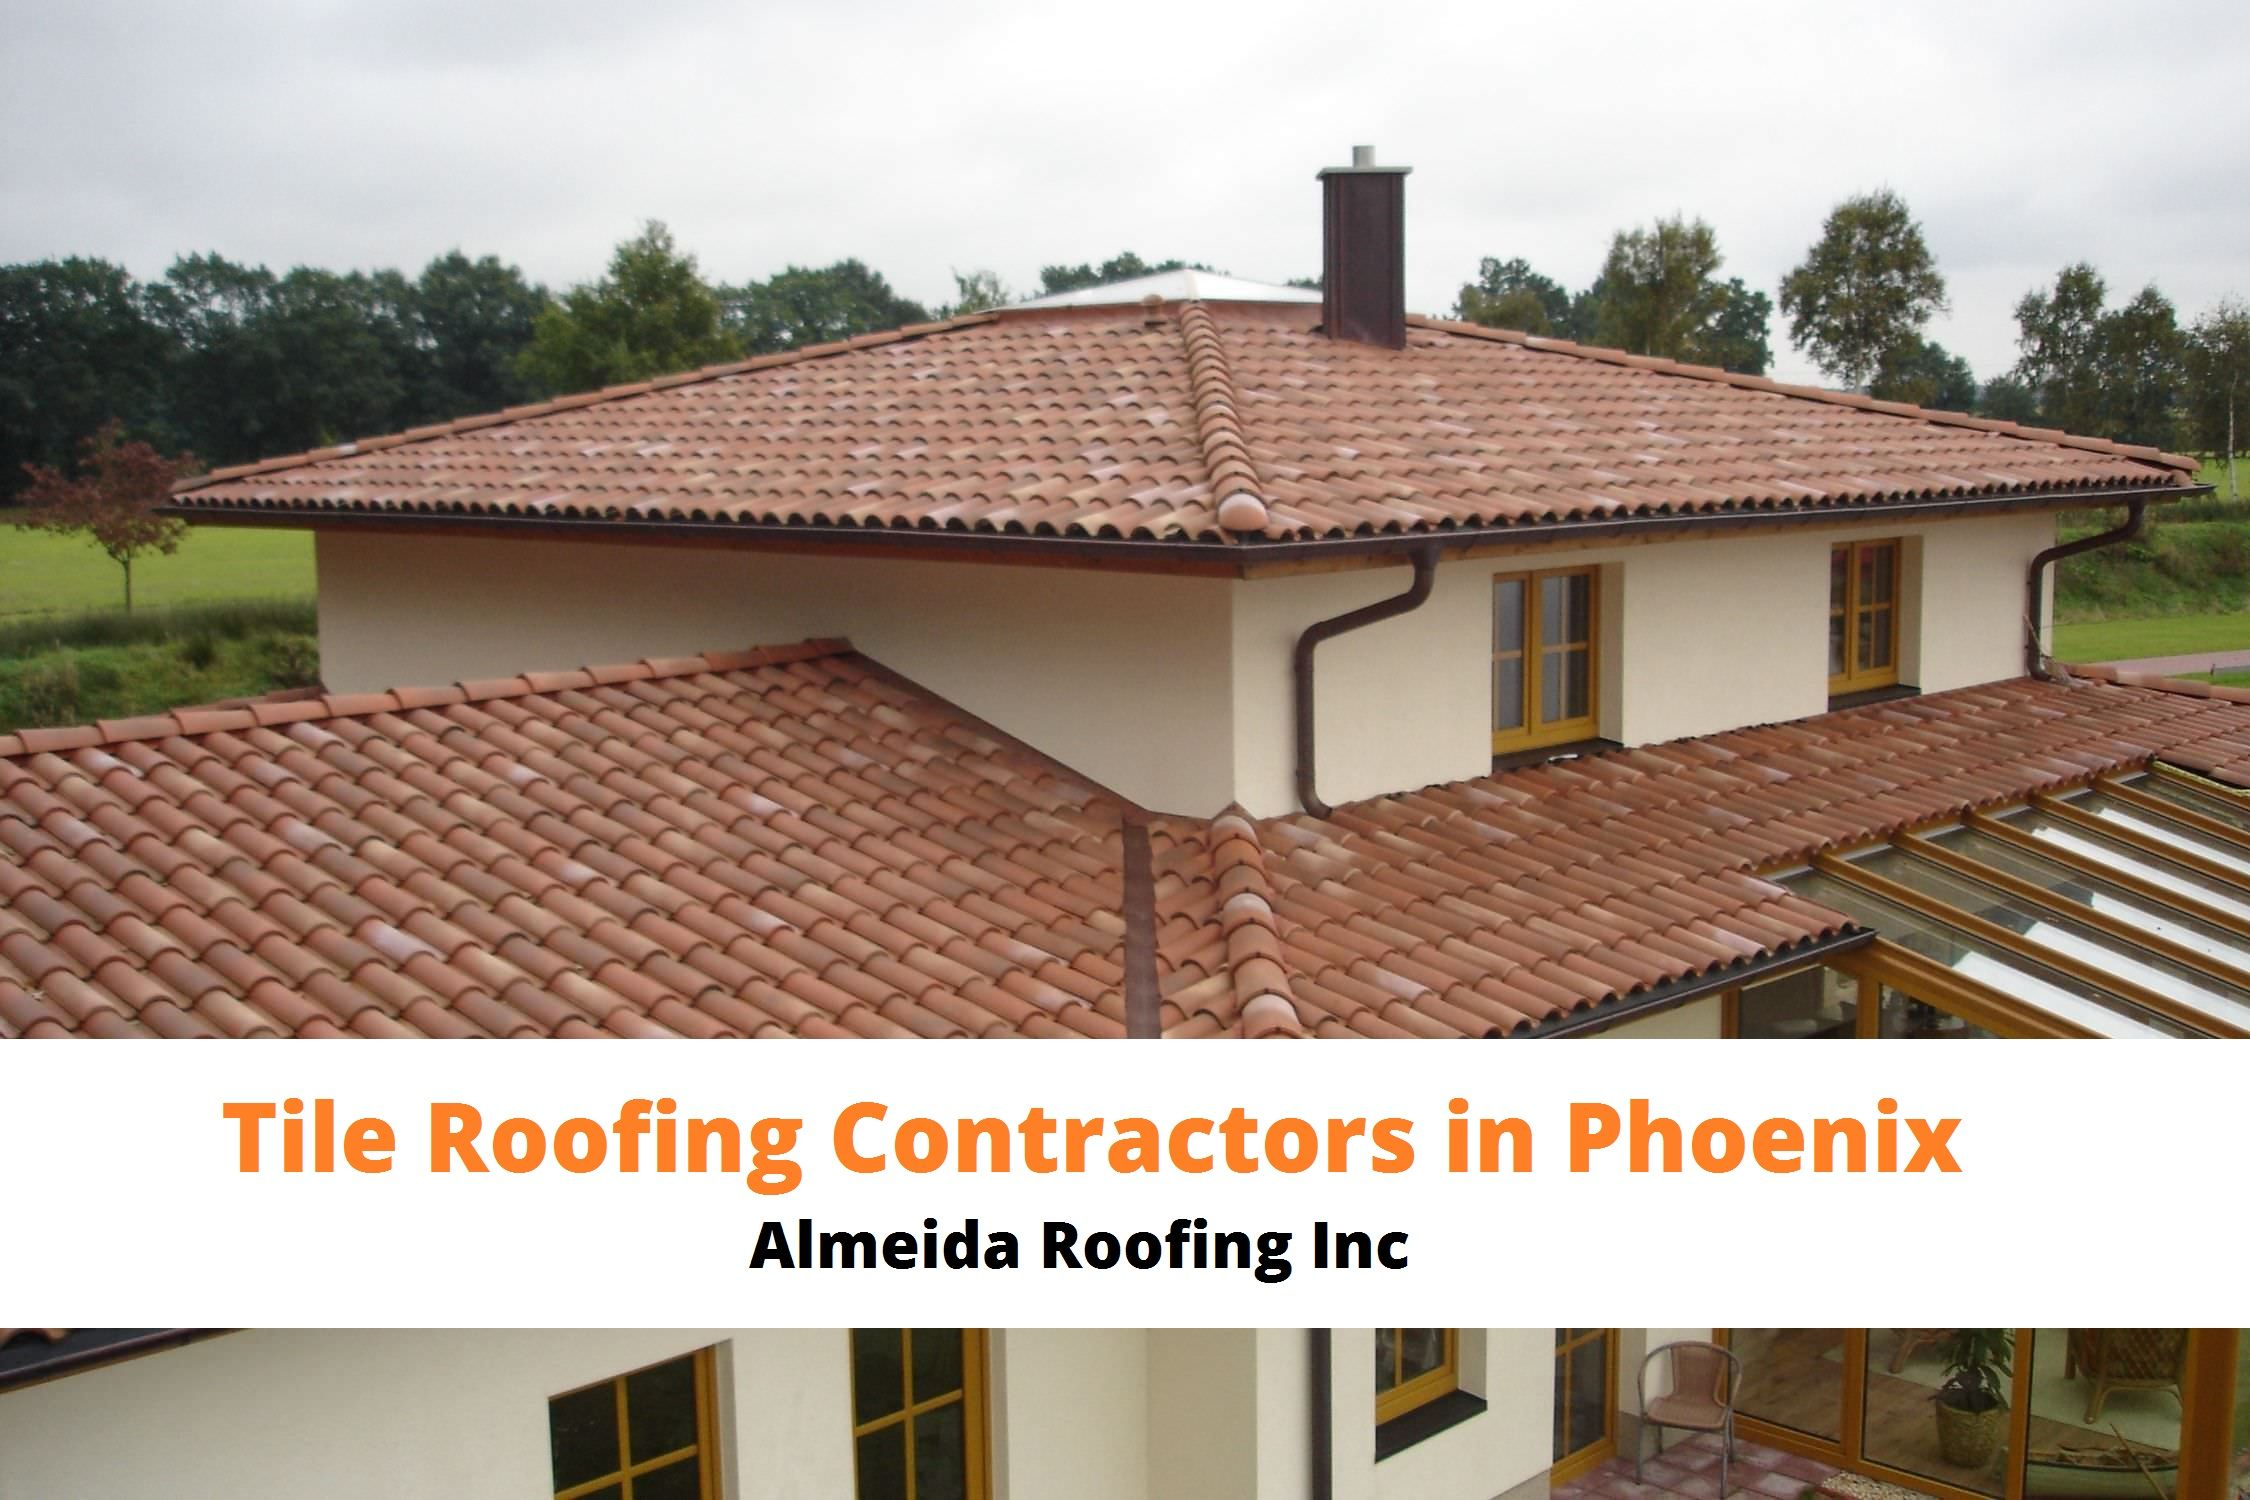 #AlmeidaRoofing Provides Professional #Tile #Roofing #contractor In #Phoenix  For Your Home